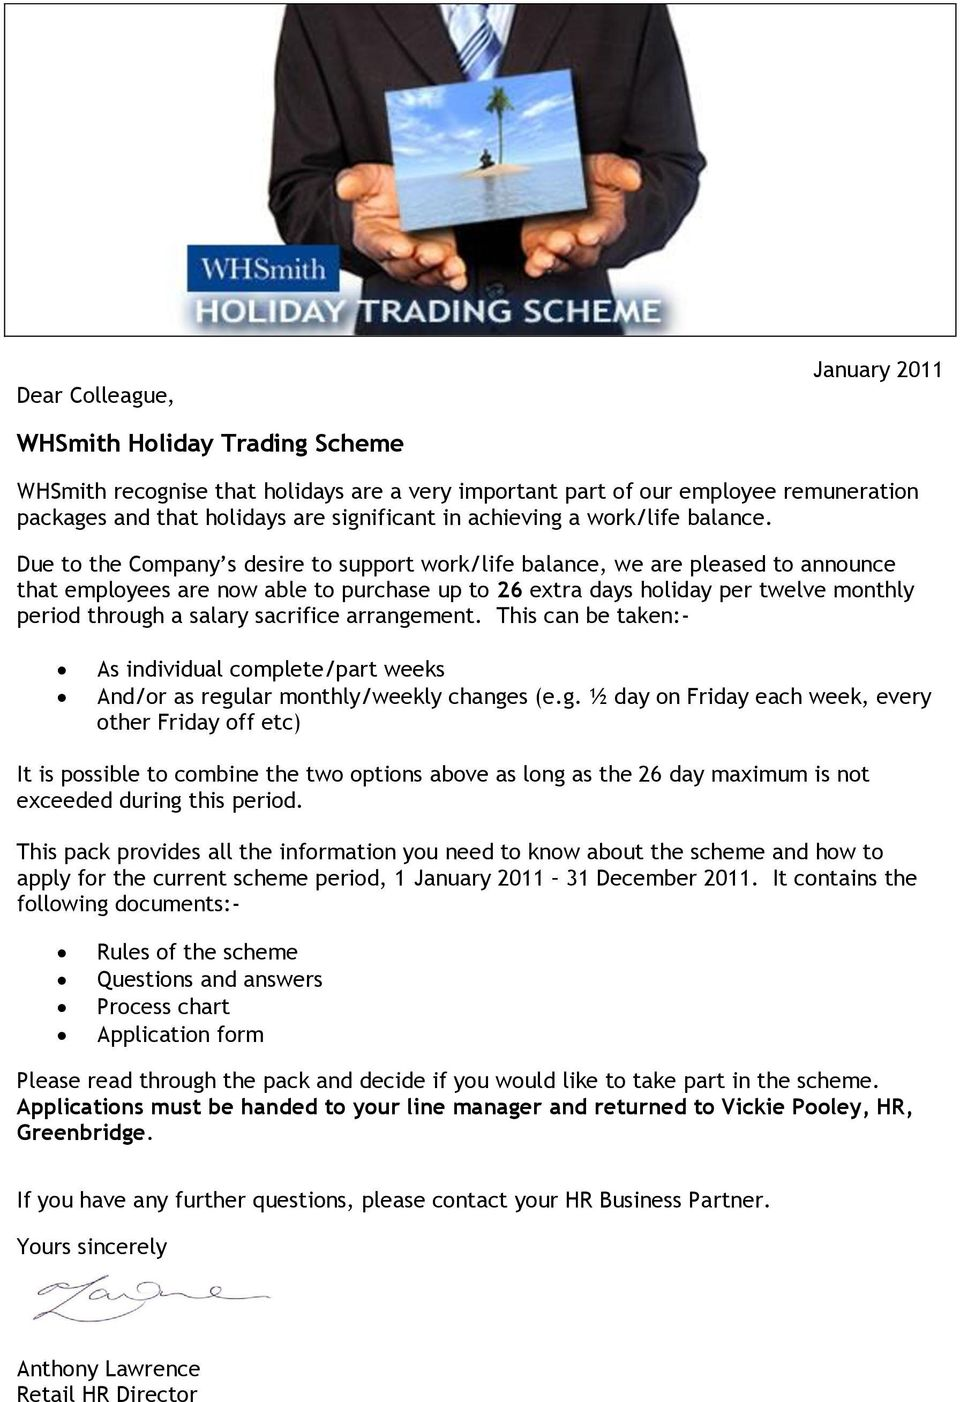 Due to the Company s desire to support work/life balance, we are pleased to announce that employees are now able to purchase up to 26 extra days holiday per twelve monthly period through a salary